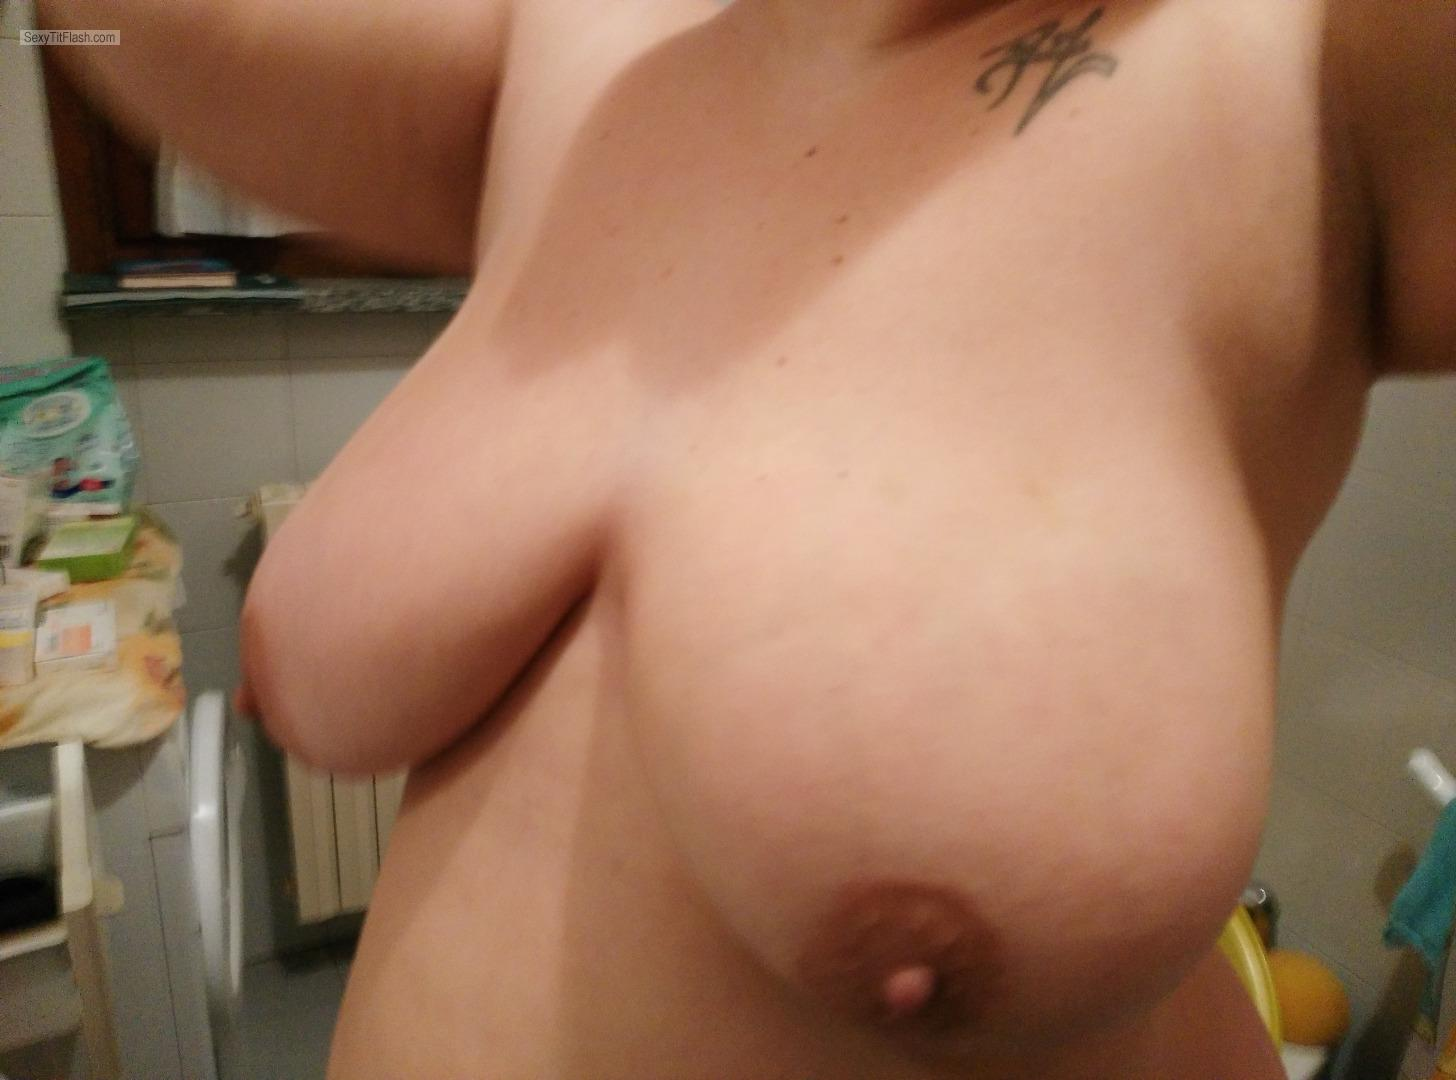 Tit Flash: My Extremely Big Tits - Topless Patrizia from Italy